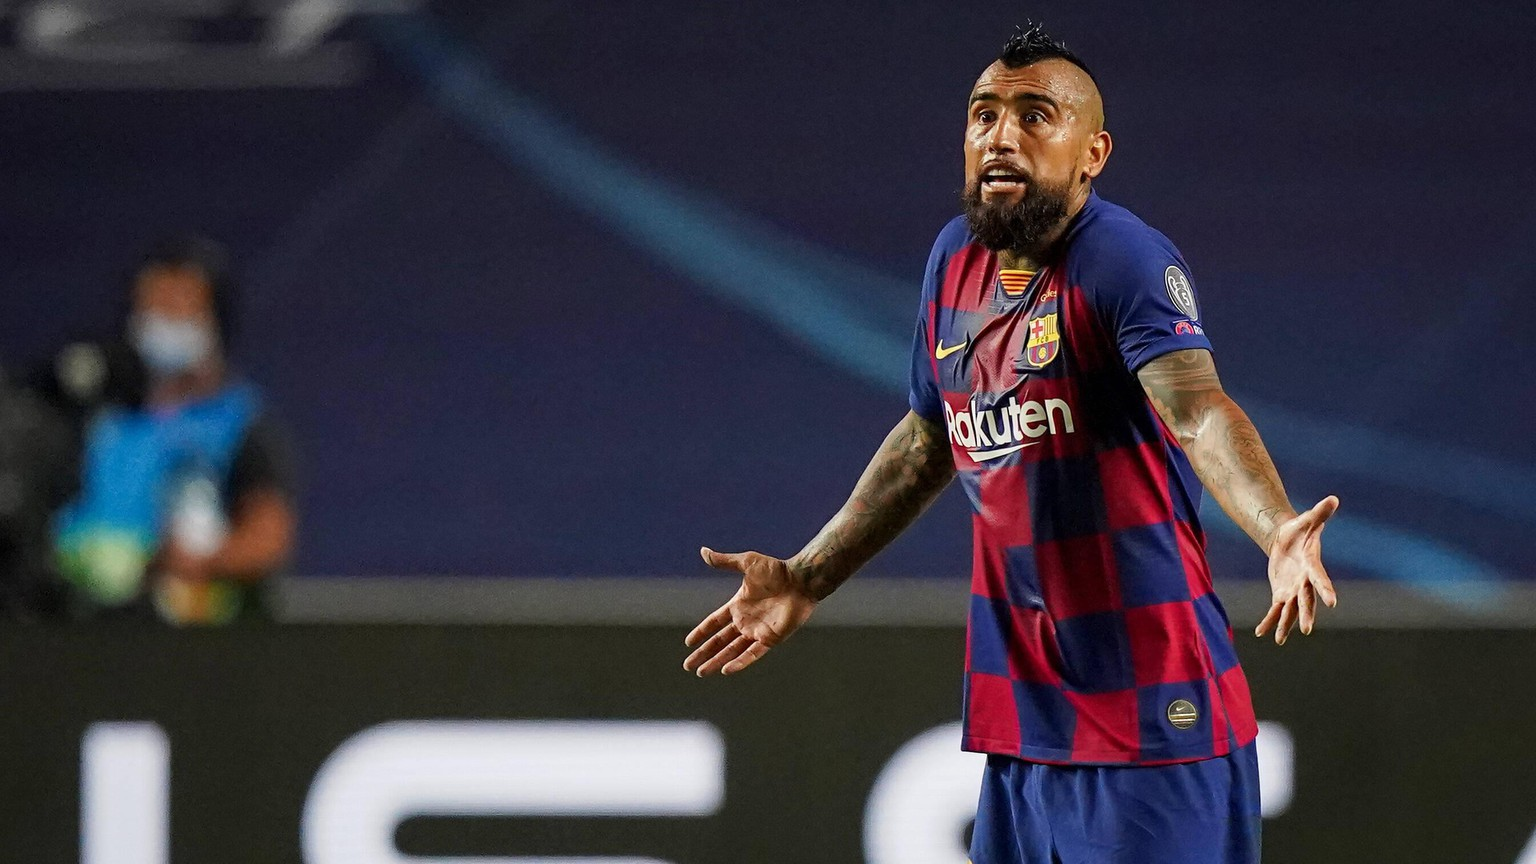 FC BAYERN MUENCHEN - FC Barcelona, Barca , Football UEFA Champions League Lisbon, Lissabon, Portugal, 14th August 2020. Arturo Vidal Barca in the quarterfinal UEFA Champions League match final tournament FC BAYERN MUENCHEN - FC BARCELONA in Season 2019/2020, FCB, Munich, Barca Photographer: Peter Schatz / Pool - UEFA REGULATIONS PROHIBIT ANY USE OF PHOTOGRAPHS as IMAGE SEQUENCES and/or QUASI-VIDEO - National and international News-Agencies OUT Editorial Use ONLY Lisbon Estadio da Luz de Benfica Portugal *** FC BAYERN MUNICH FC BARCELONA , Football UEFA Champions League Lisbon, Lisbon, Portugal, 14th August 2020 Arturo Vidal Barca in the quarterfinal UEFA Champions League match final tournament FC BAYERN MUNICH FC BARCELONA in Season 2019 2020, FCB, Munich, Barca Photographer Peter Schatz Pool UEFA REGULATIONS PROHIBIT ANY USE OF PHOTOGRAPHS as IMAGE SEQUENCES and or QUASI VIDEO National and international News Agencies OUT Editorial Use ONLY Lisbon Estadio da Luz de Benfica Portugal Poolfoto Peter Schatz / Pool ,EDITORIAL USE ONLY